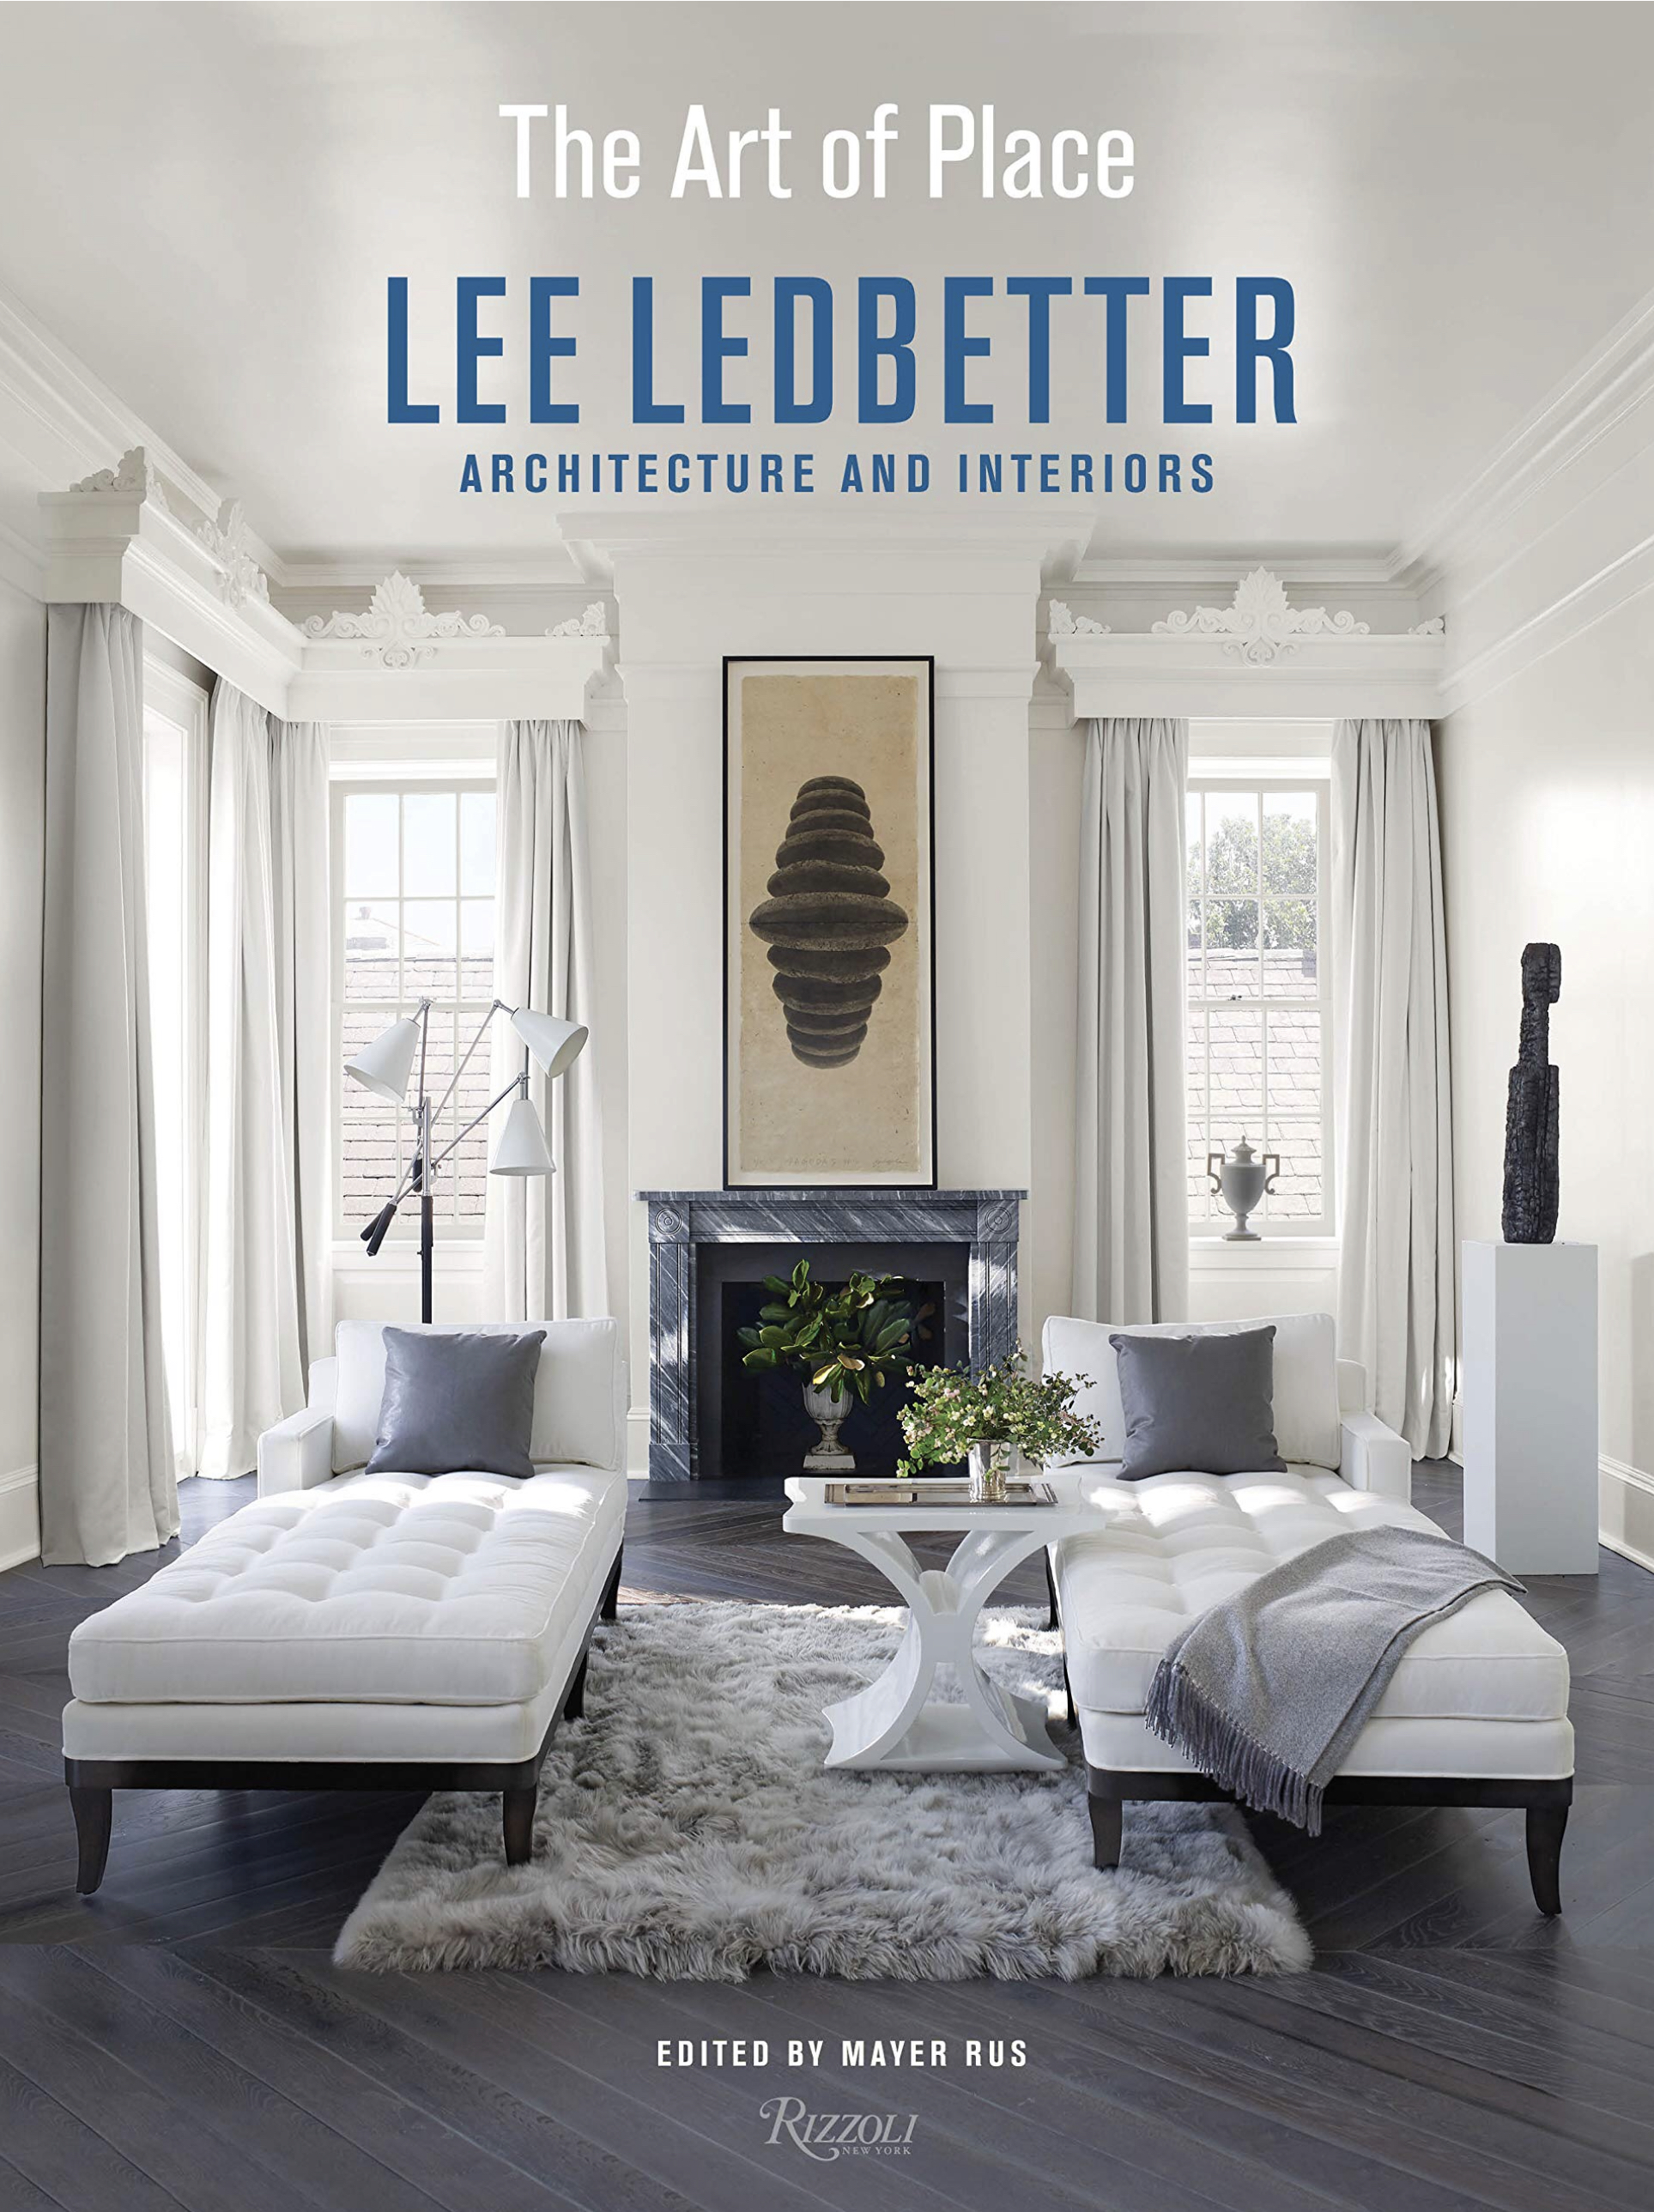 The Art of Place, Lee Ledbetter Architure and Interiors; Edited by Mayer Rus; Rizzoli.